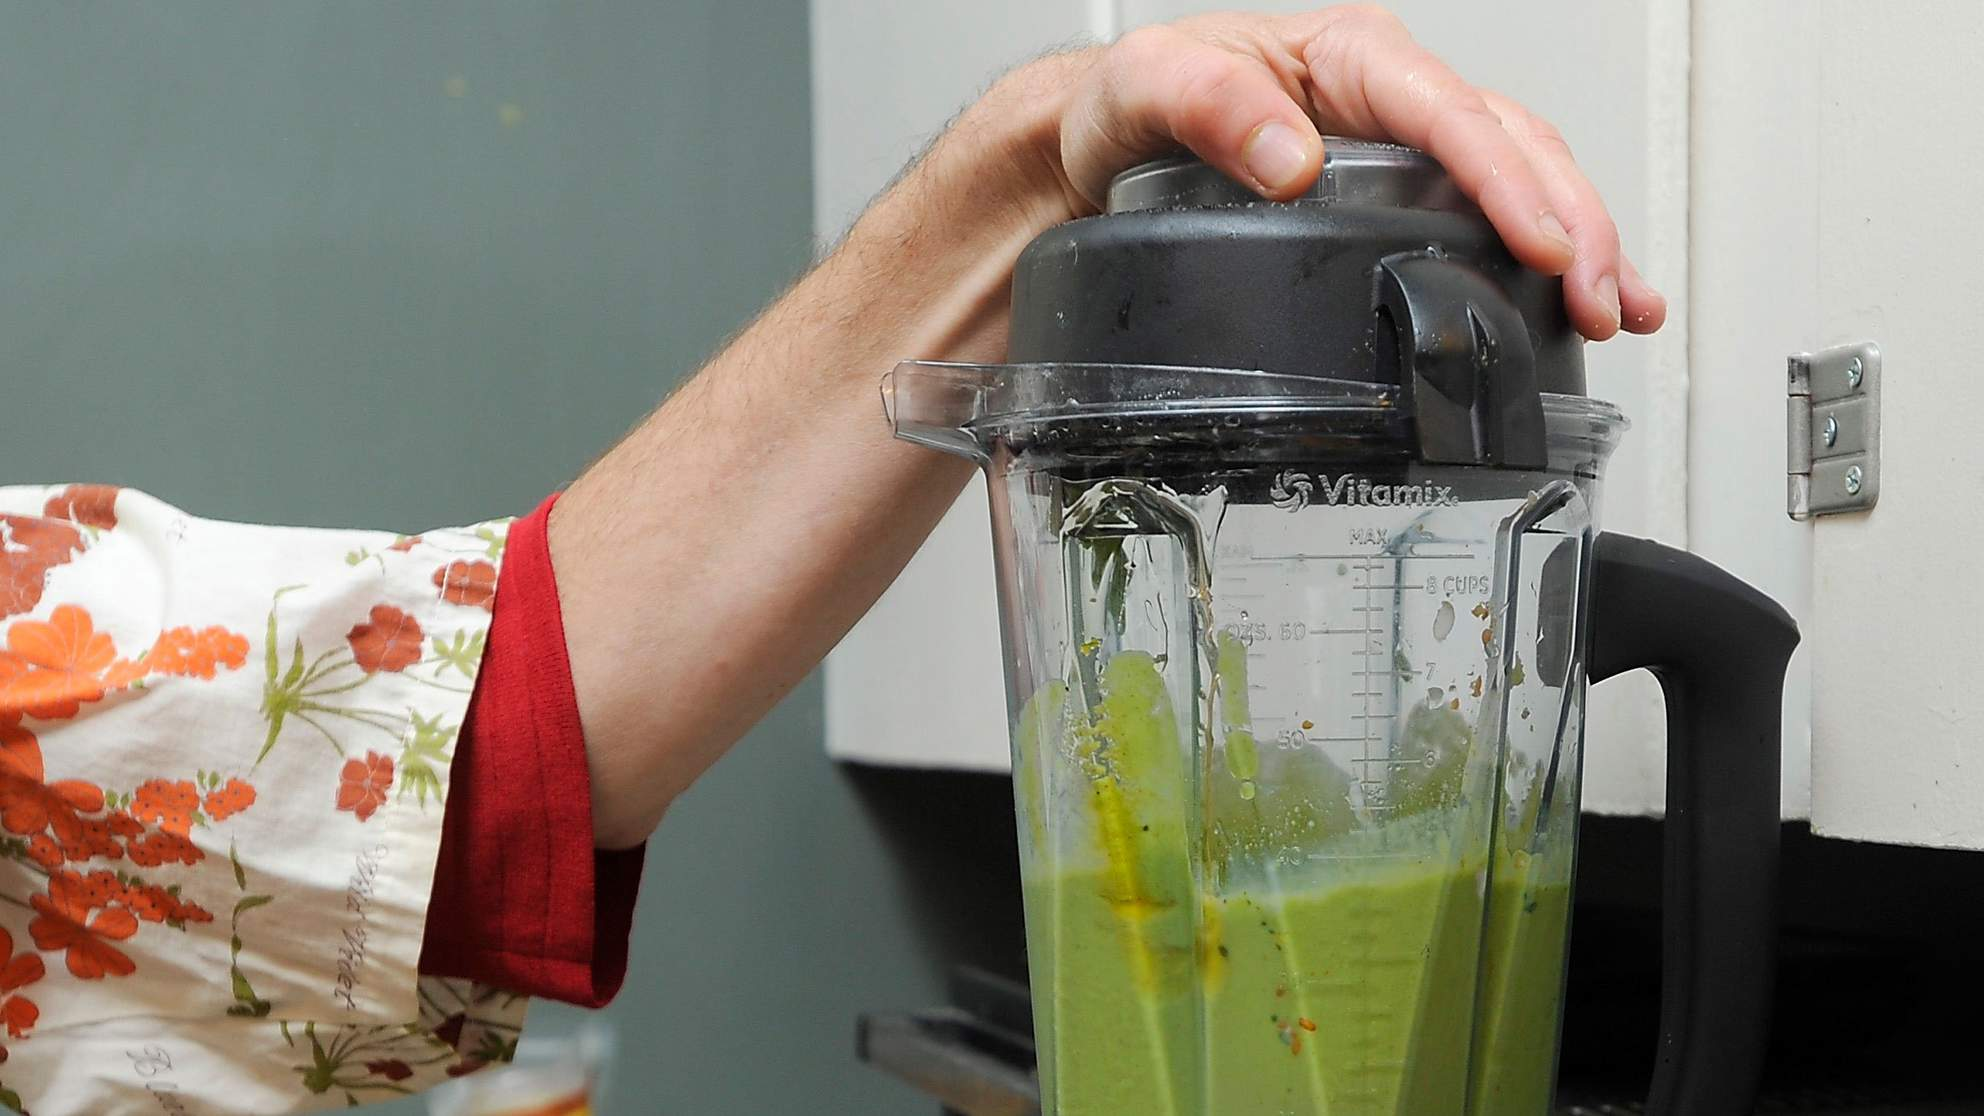 Vitamix Owners Could Get a Gift Card as Part of a Class-Action Settlement